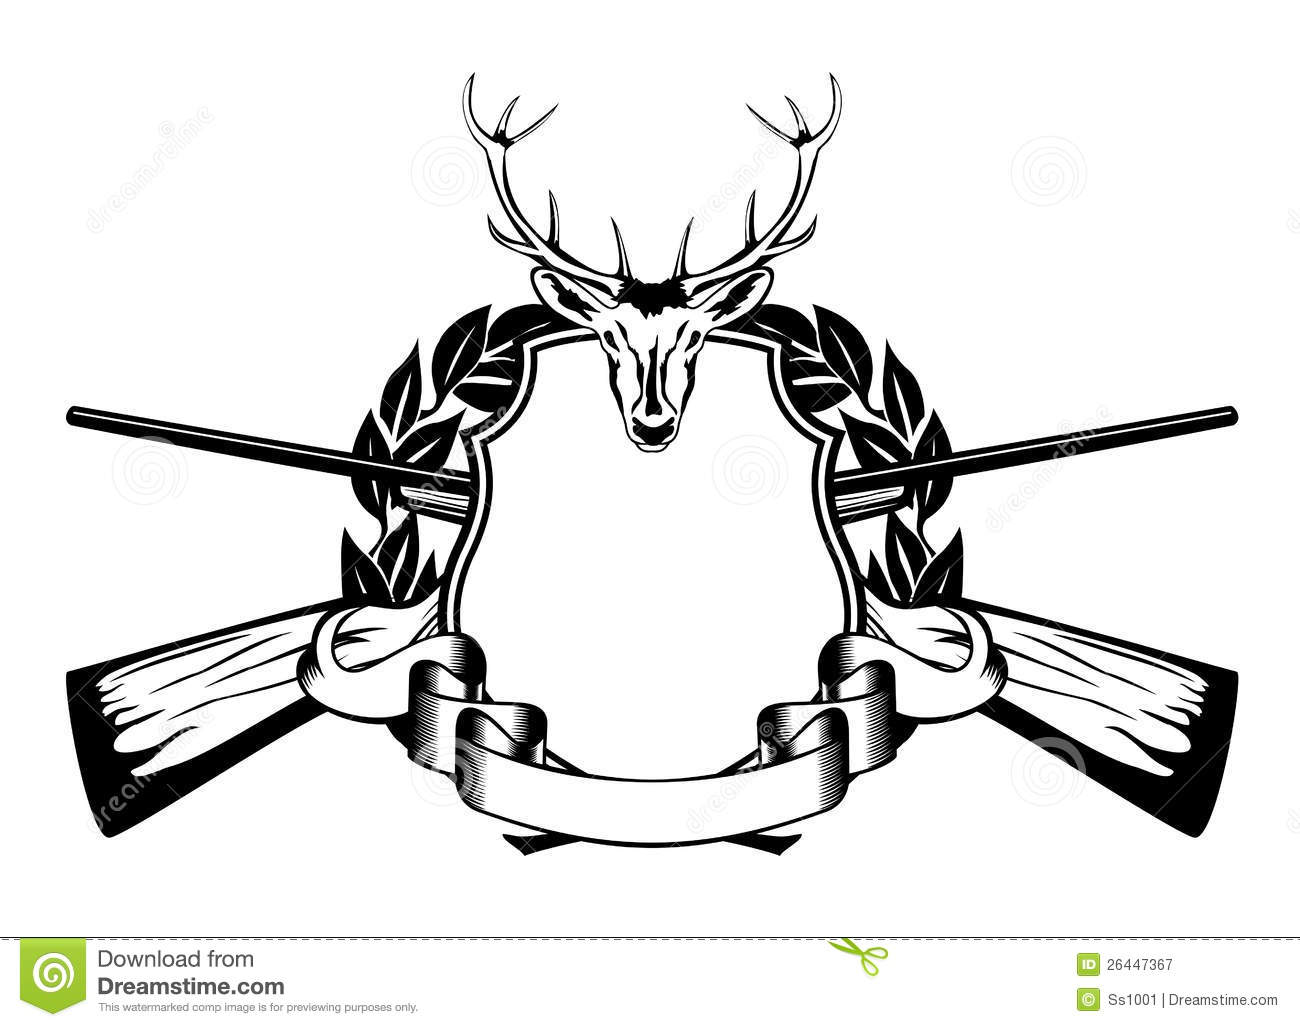 Armi1961 together with 100976 furthermore 2 besides 20 Egyptian Symbol Tattoos also Skeleton Anatomy Diagram Vintage Style. on antique deer skull